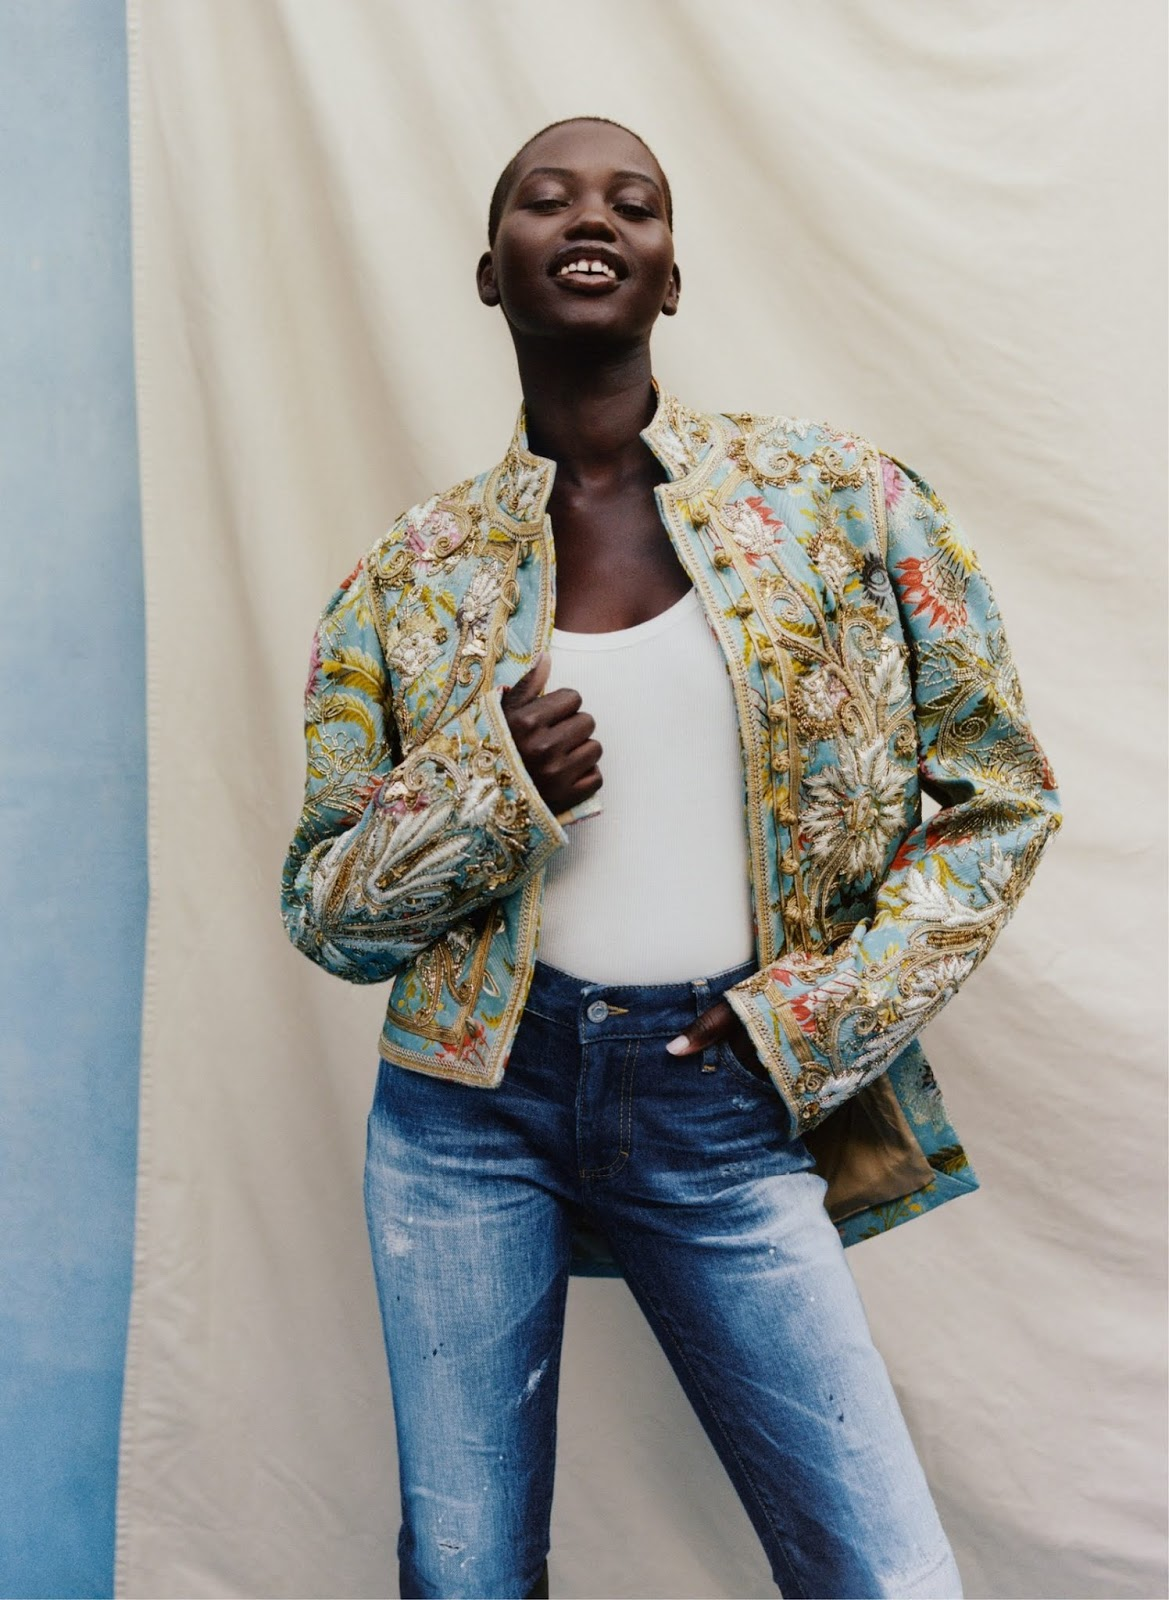 Adut Akech - Dries Van Noten jacket and tank top. Dsquared2 jeans. Photographed by Tyler Mitchell, Vogue, April 2020